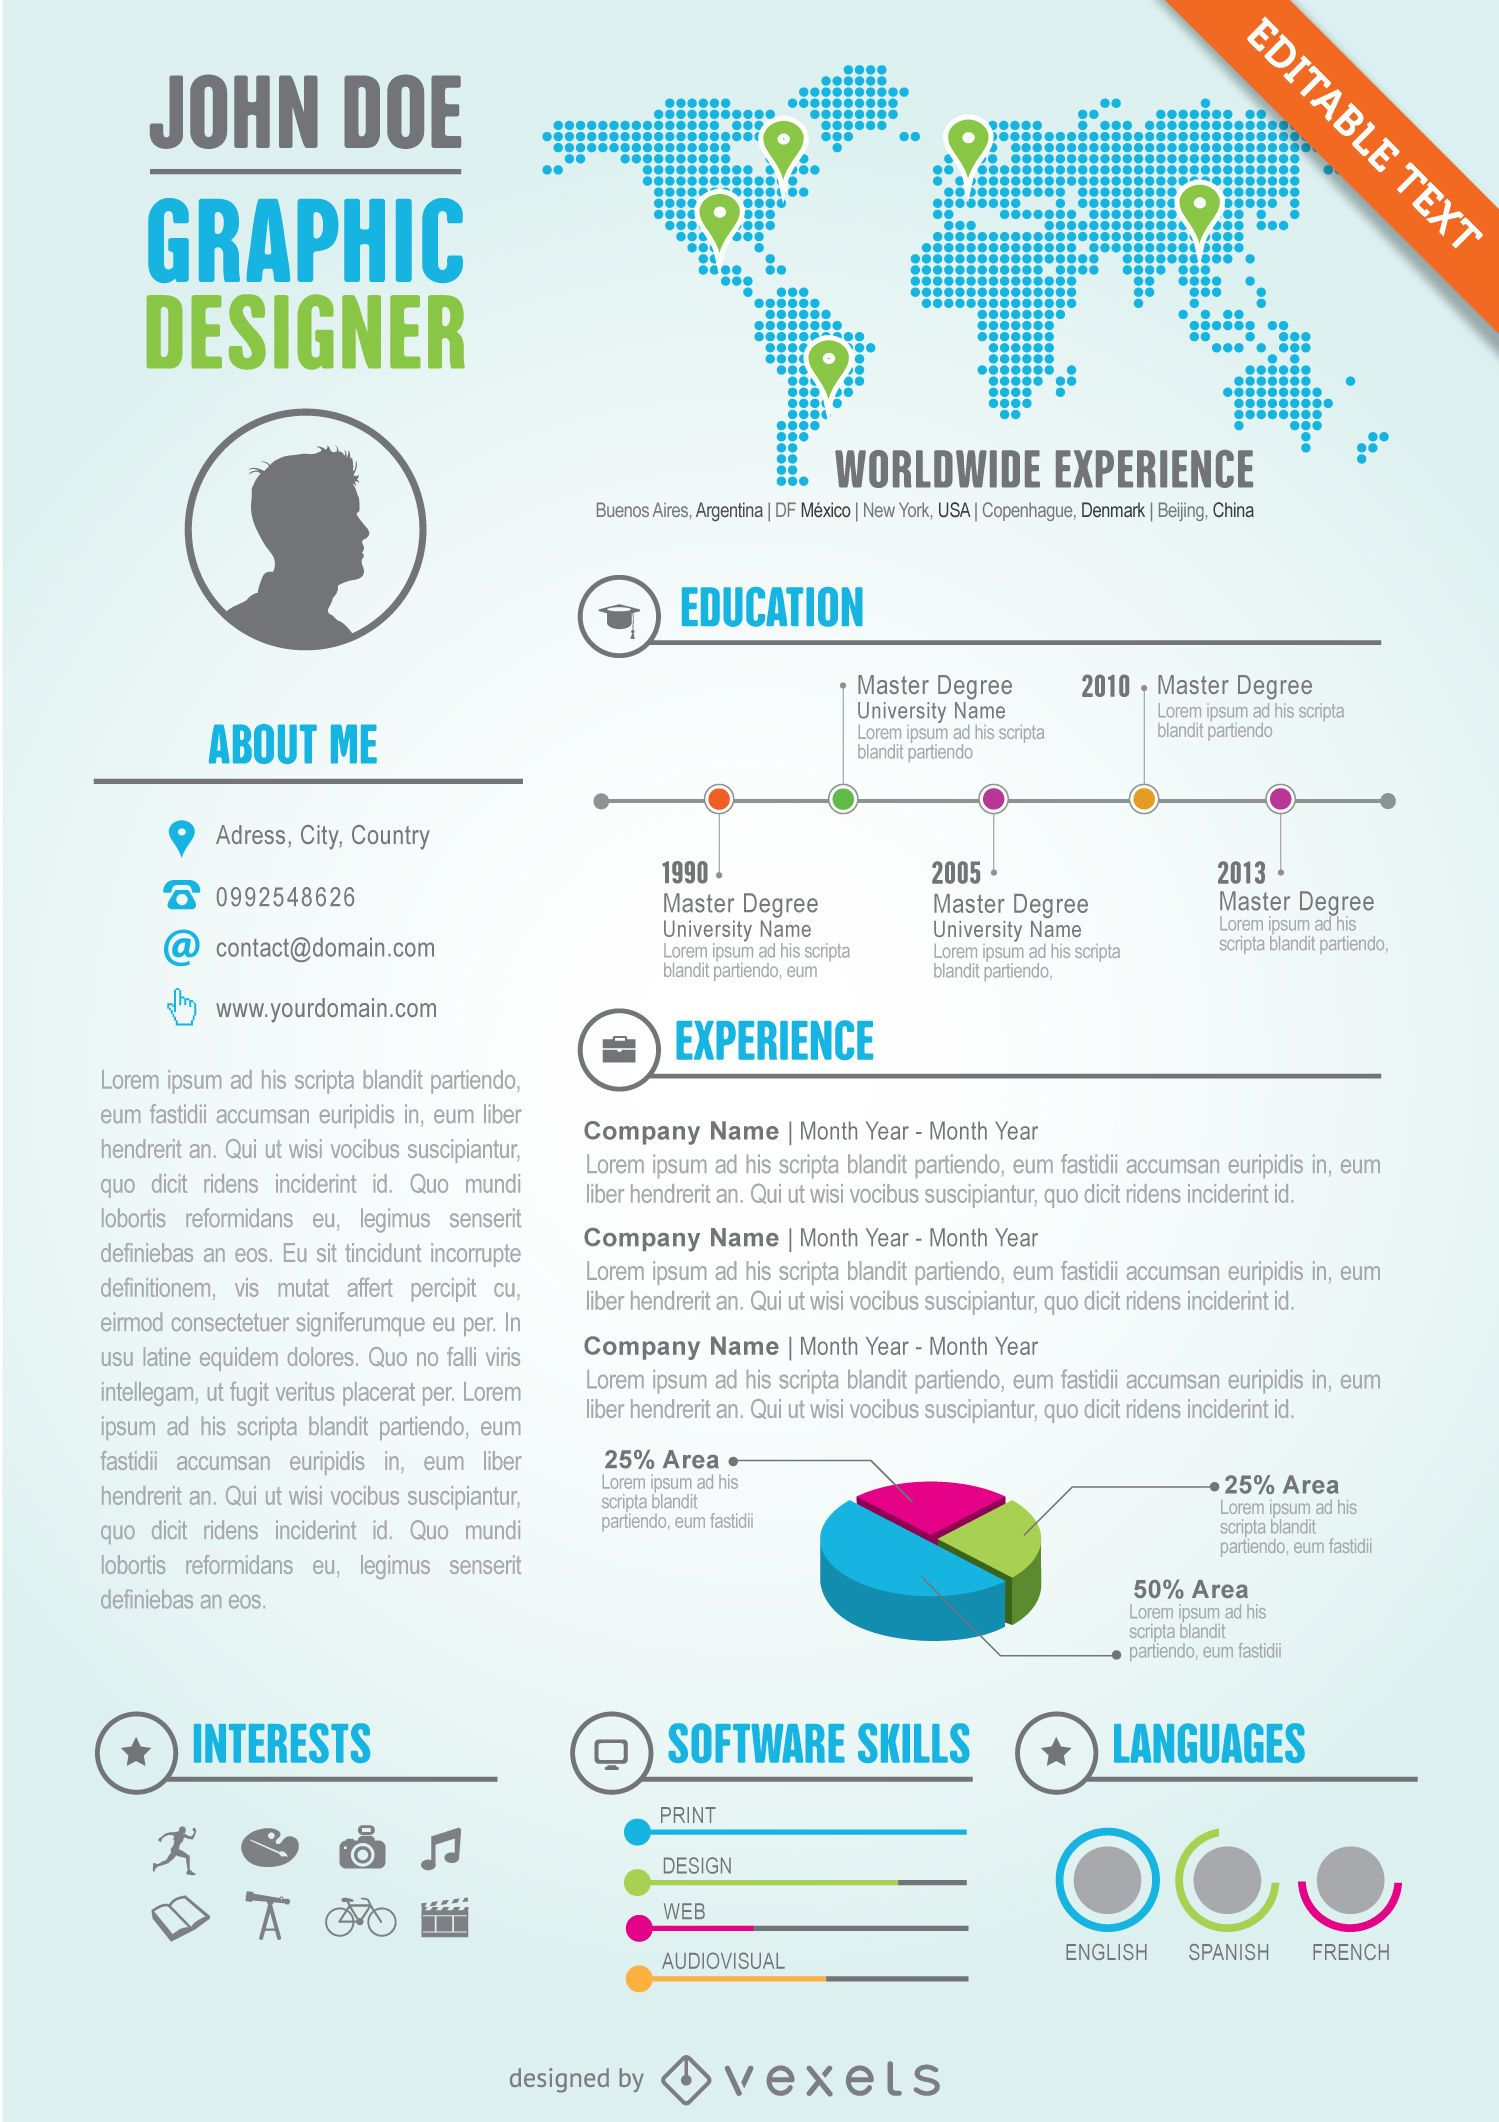 Graphic Designer Editable Resume Cv Template. Download Large Image 592x841px